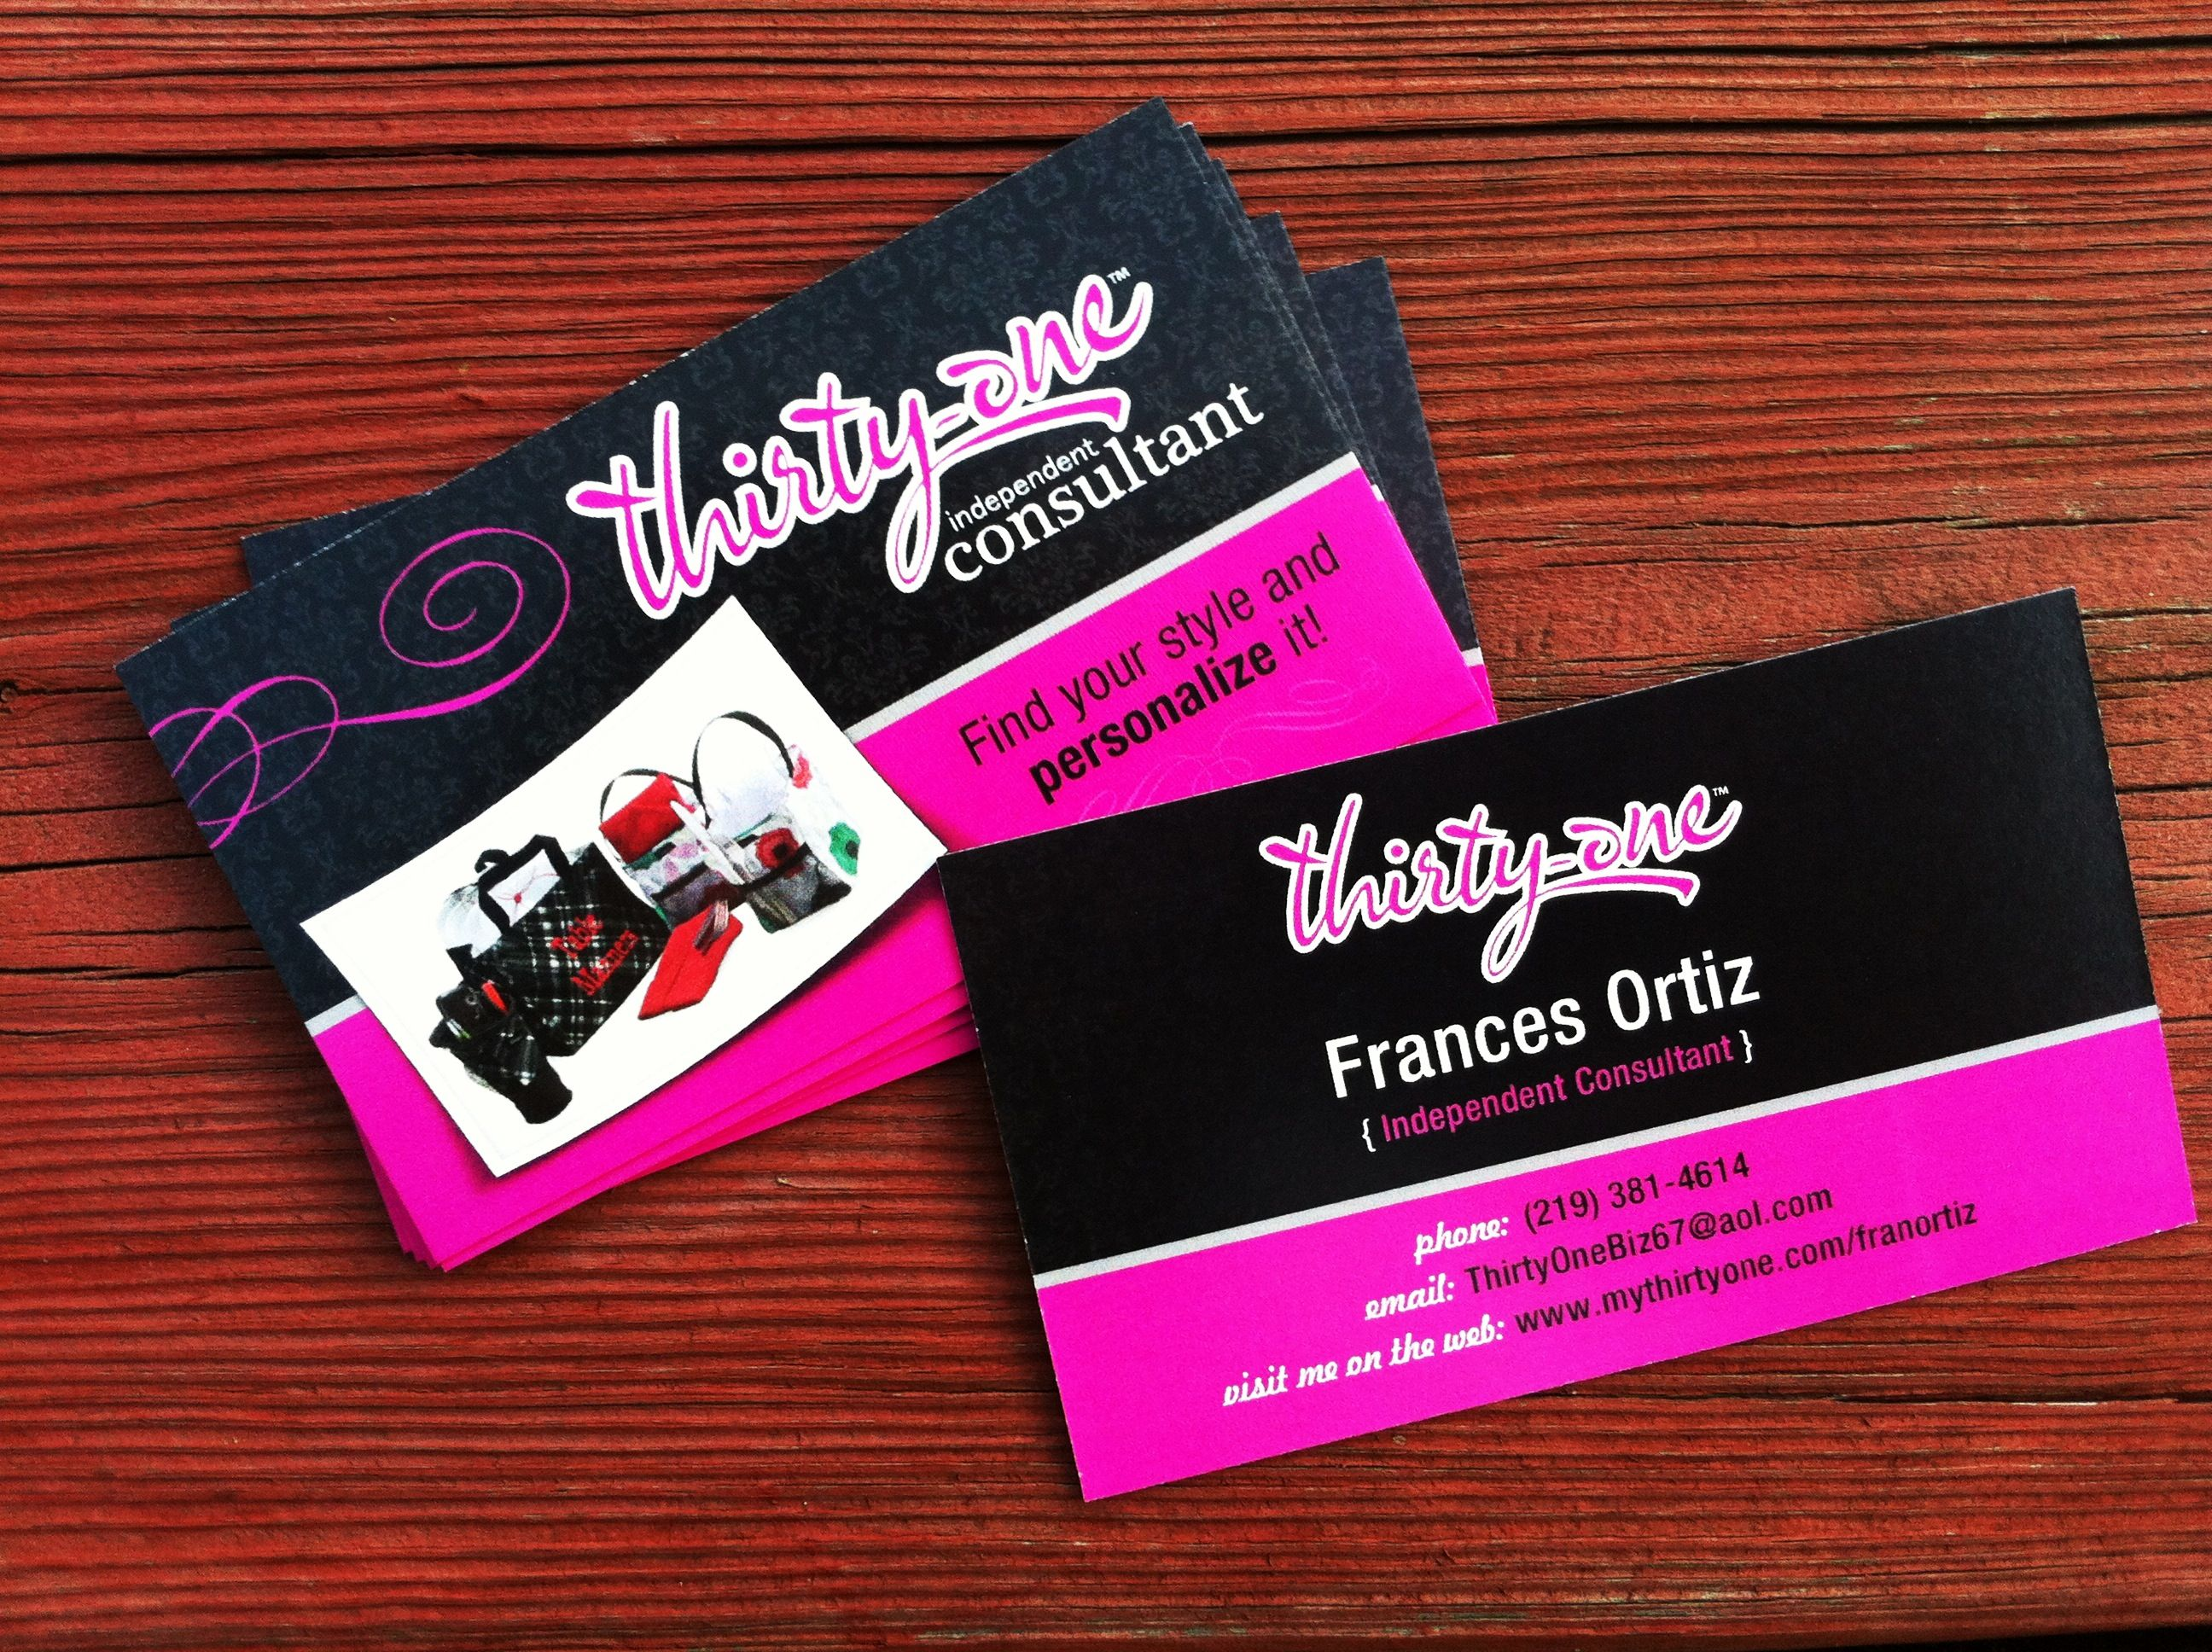 Thirty one business cards for independent consultant design print thirty one business cards for independent consultant design print full color on reheart Choice Image